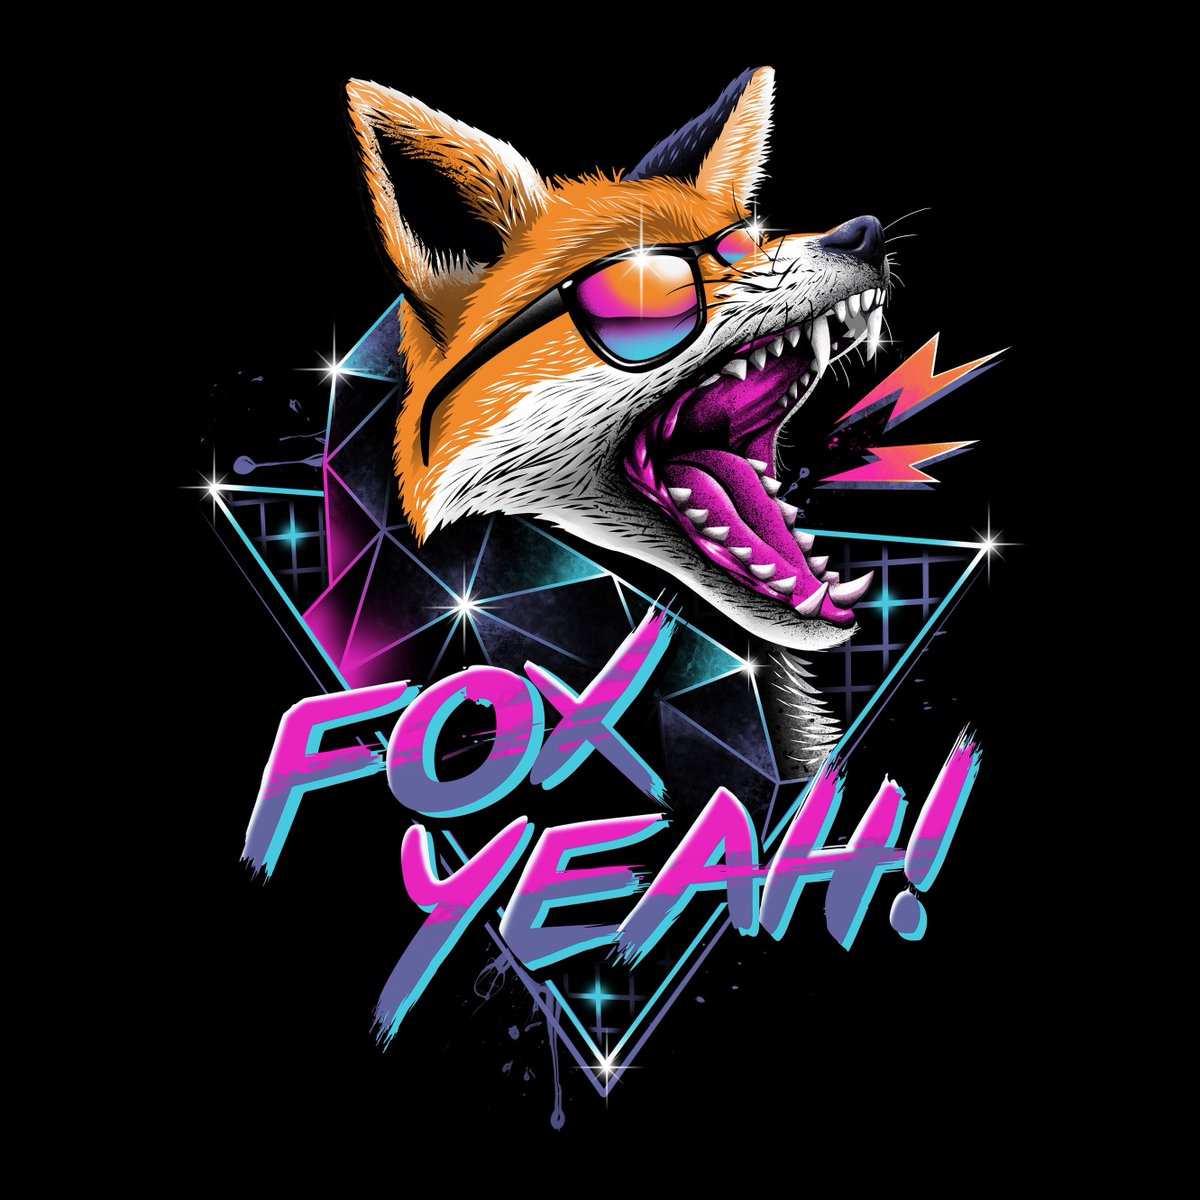 Walli On Twitter Walli Of The Day Fox Yeah By Vincent